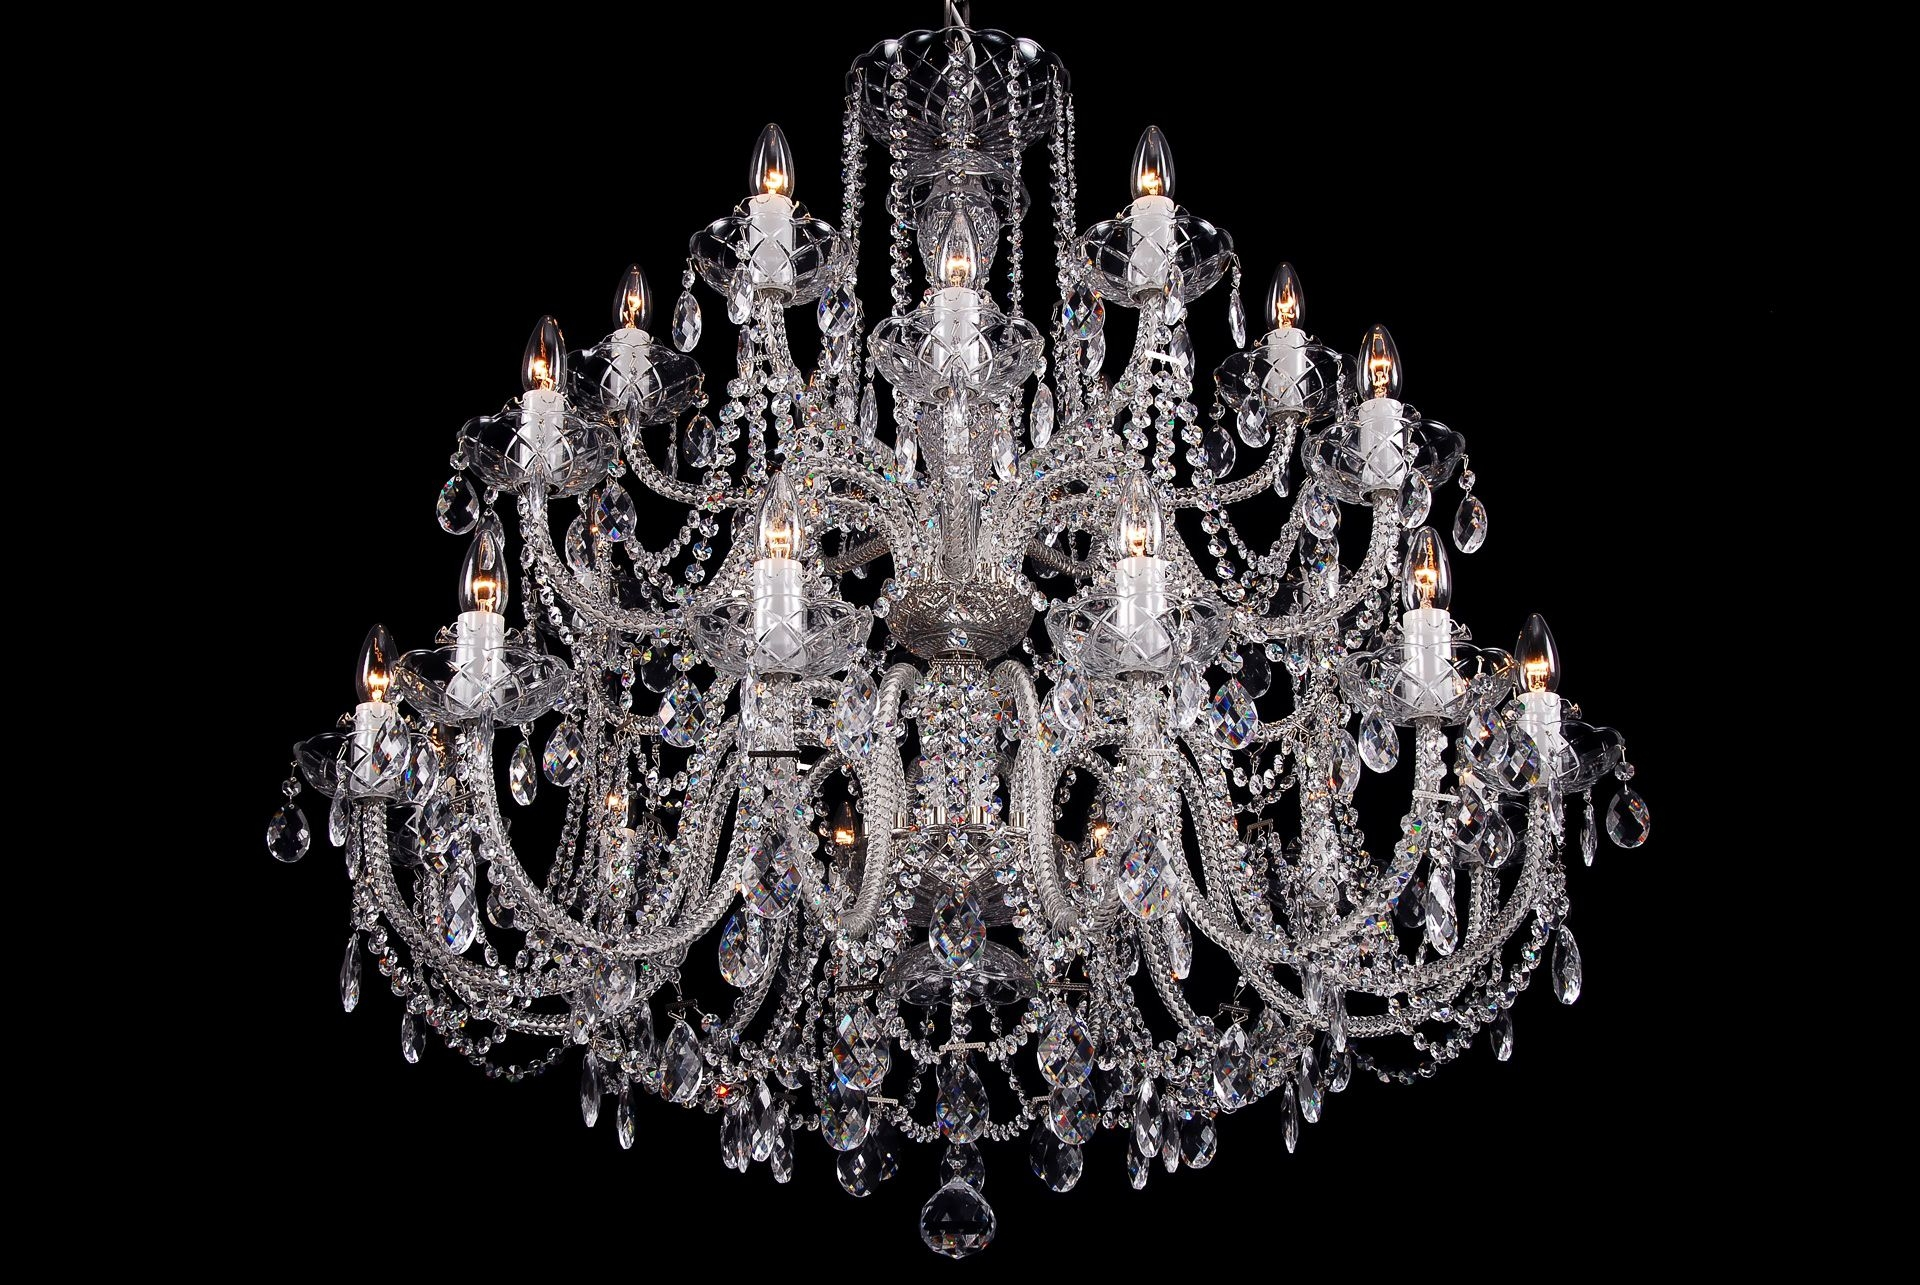 The Largest Clear Crystal Chandelier With Silver Coloured Metal Regarding Huge Crystal Chandelier (Image 15 of 15)